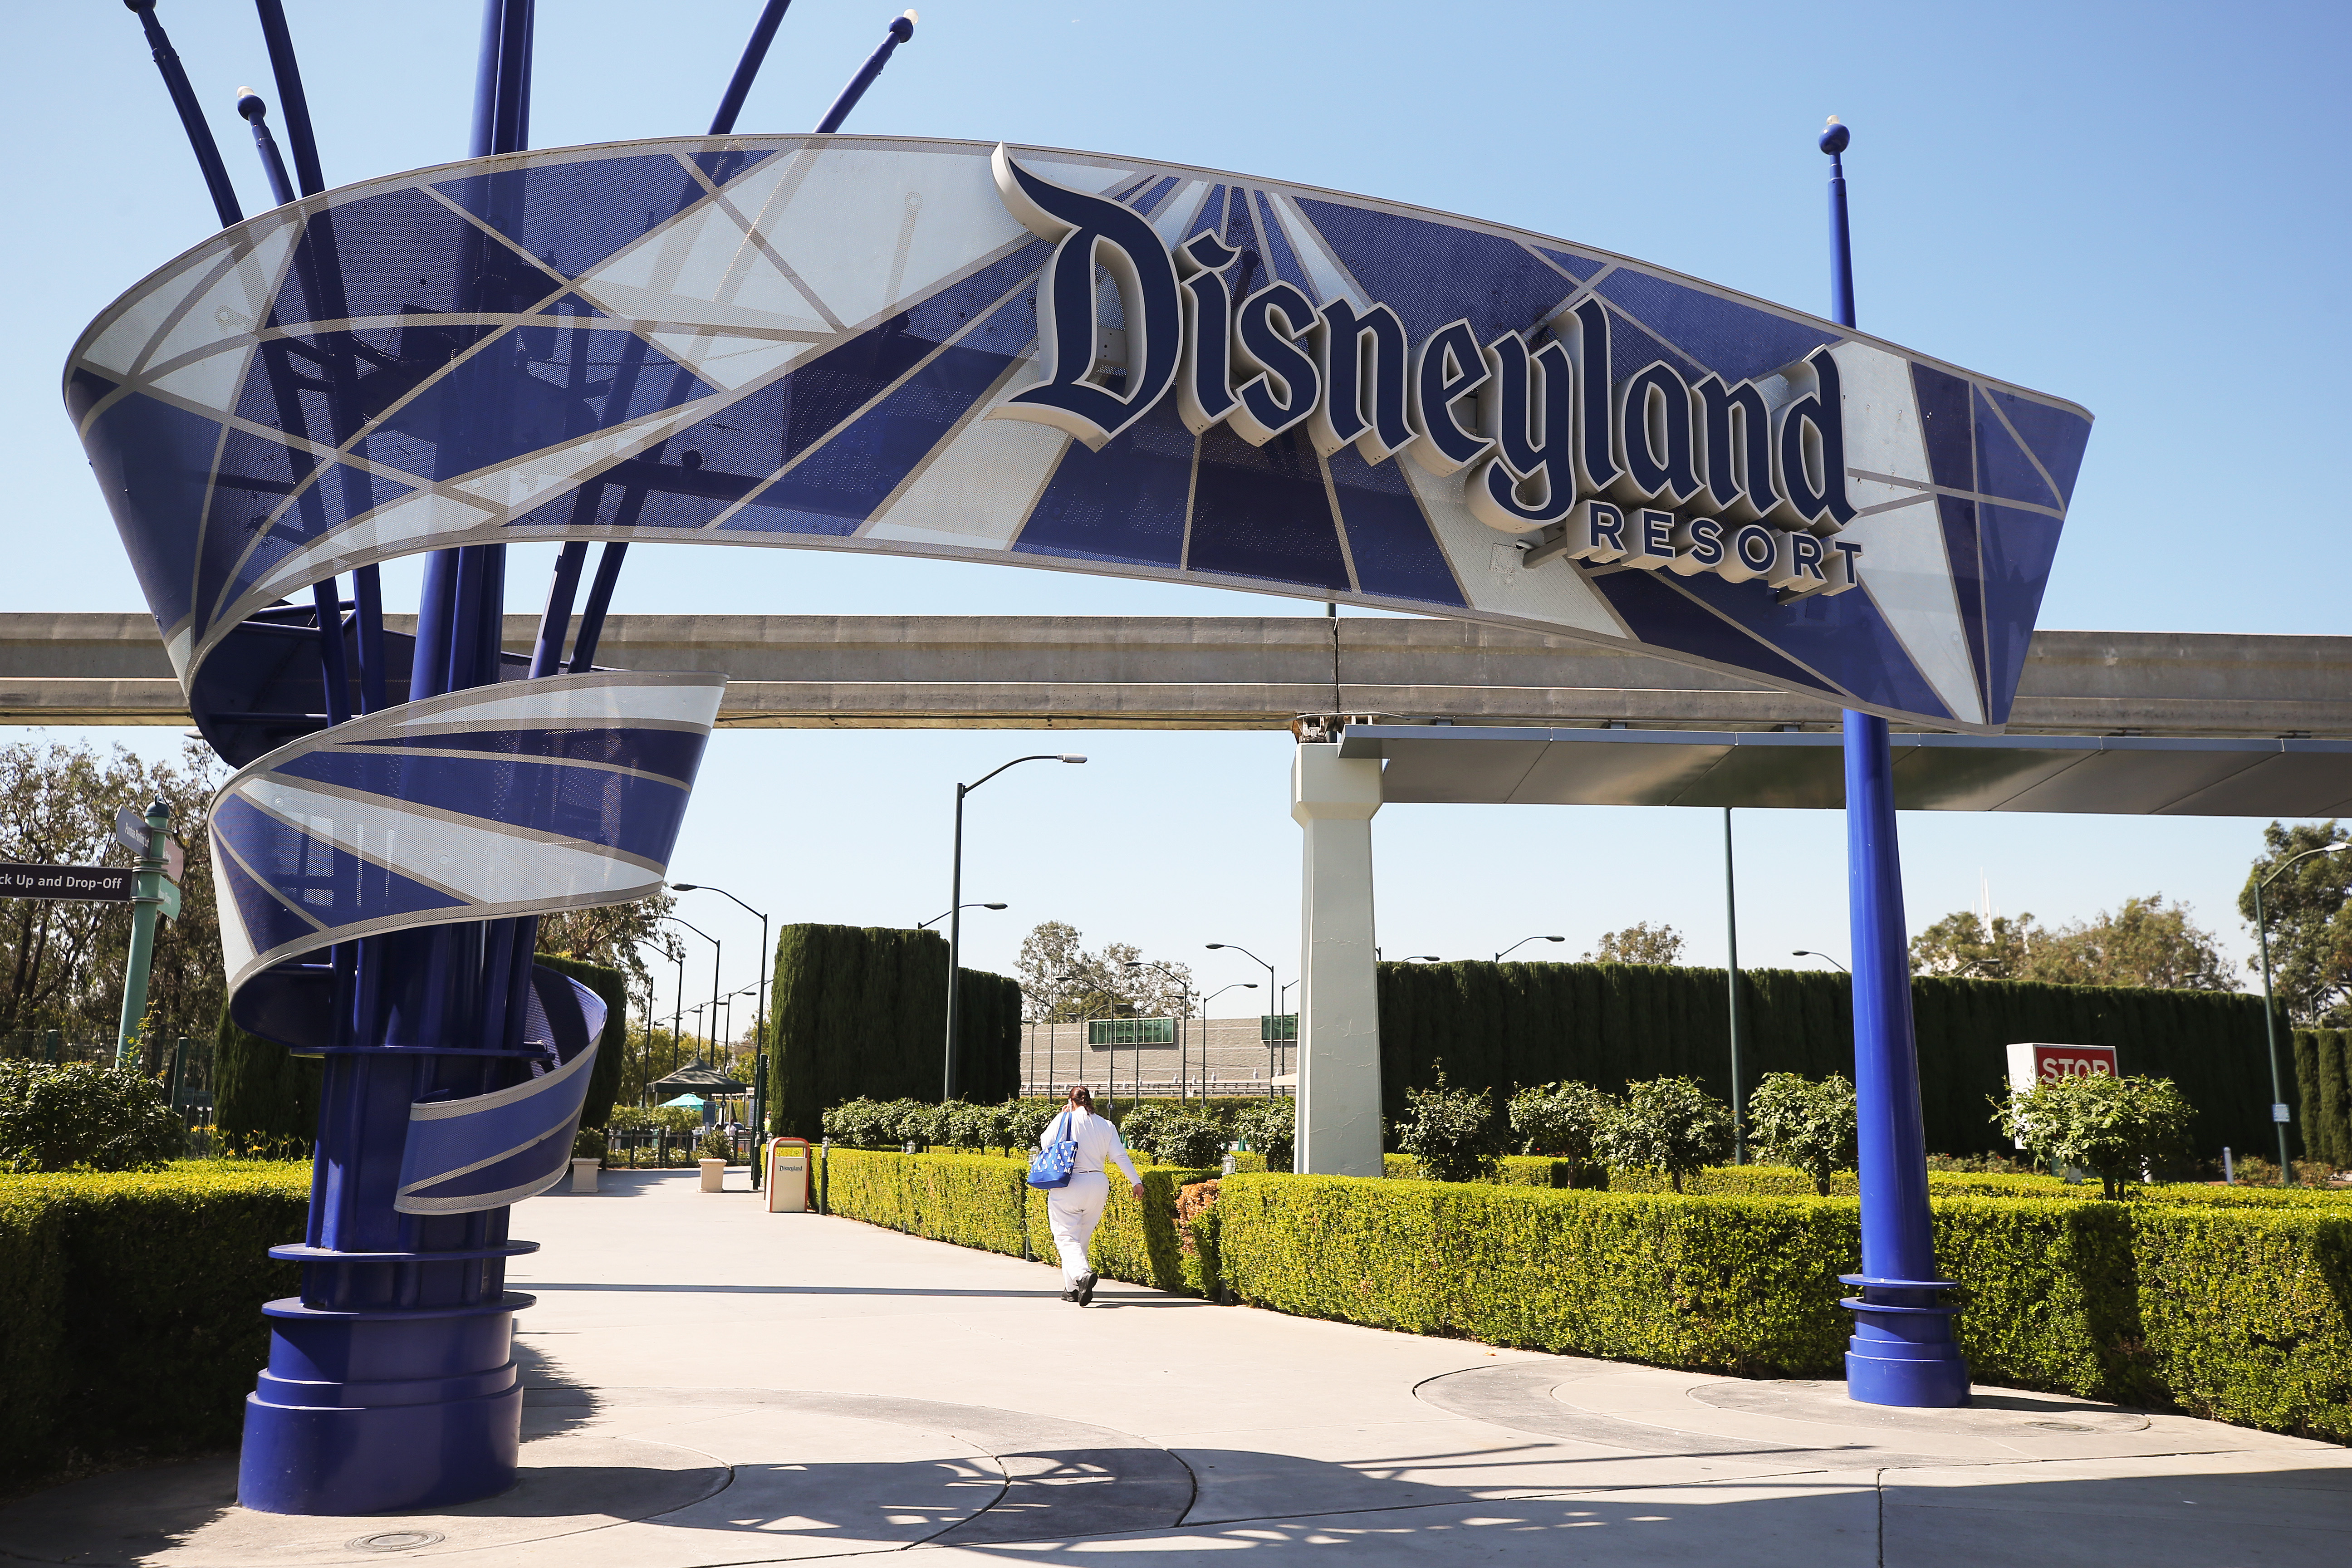 Gov. Newsom remains firm: It's too soon to reopen theme parks